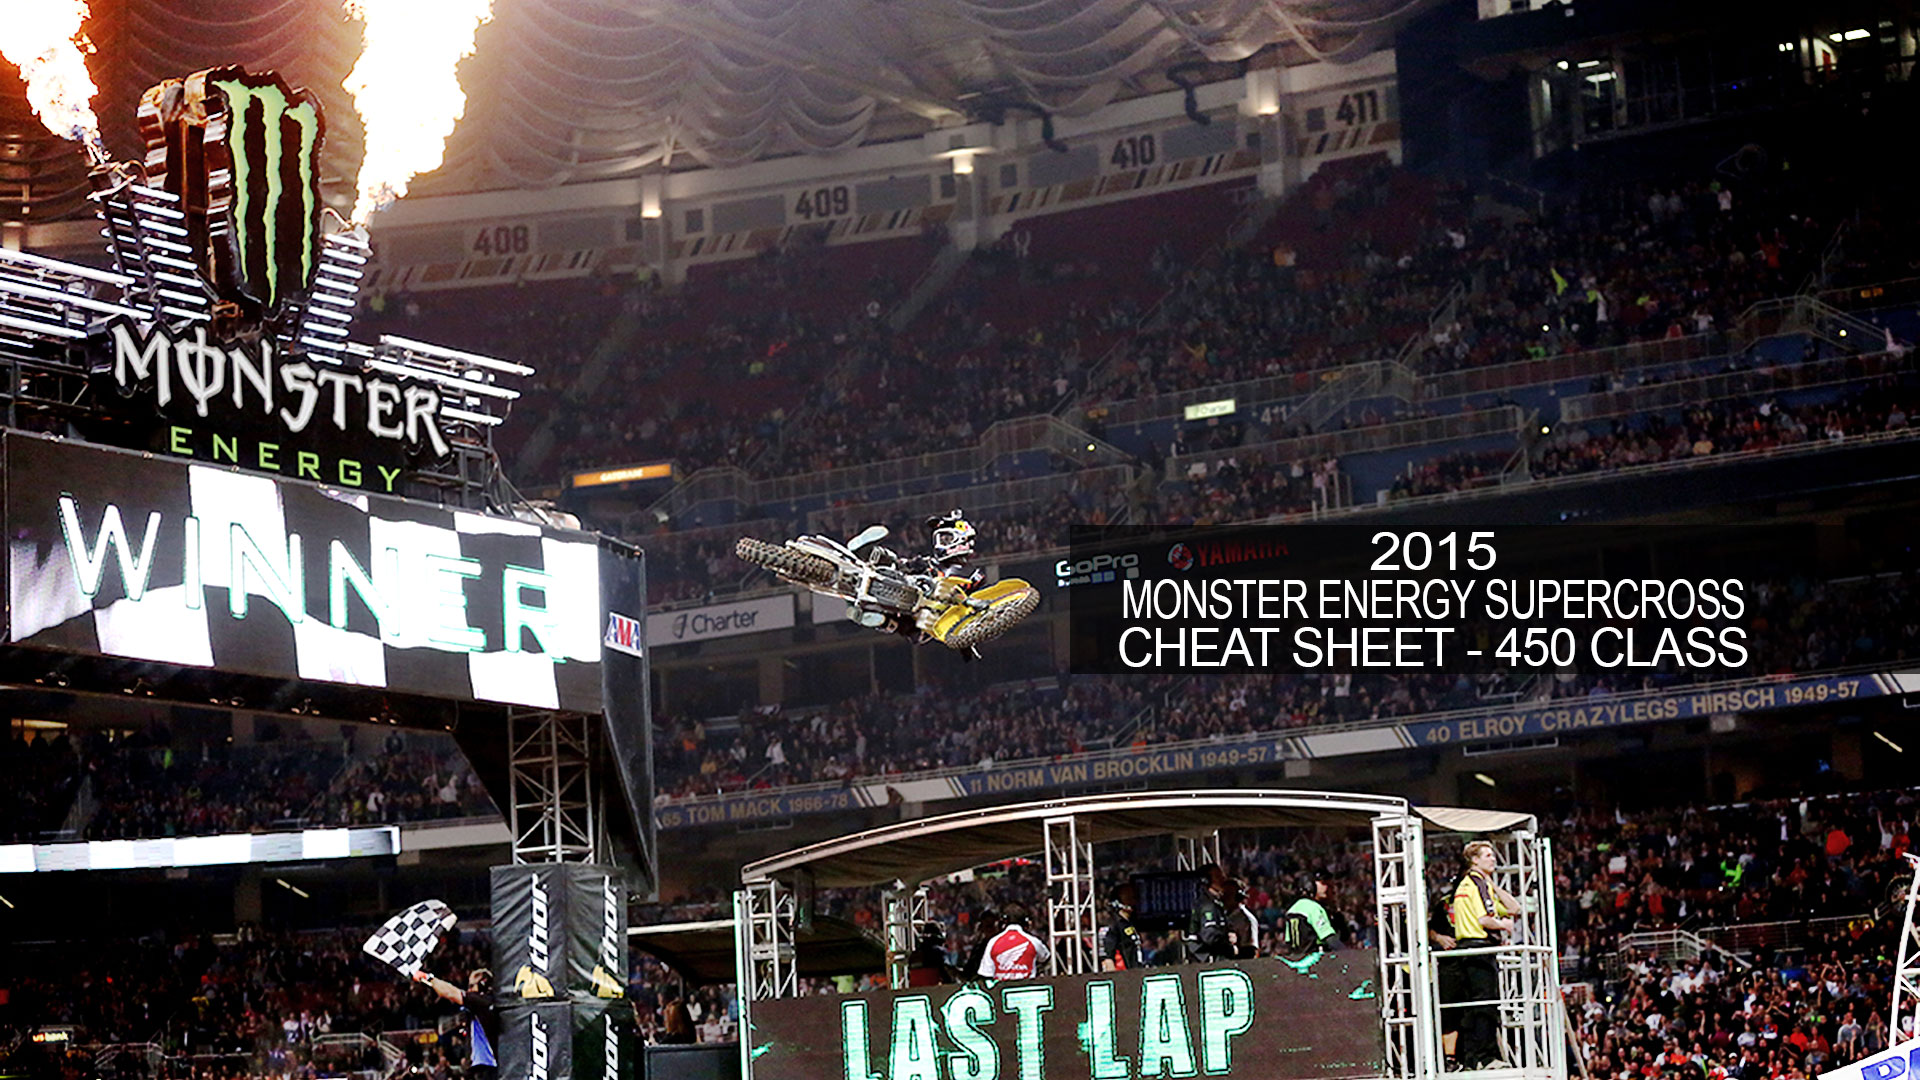 2015 Monster Energy Supercross Cheat Sheet - 450 Class